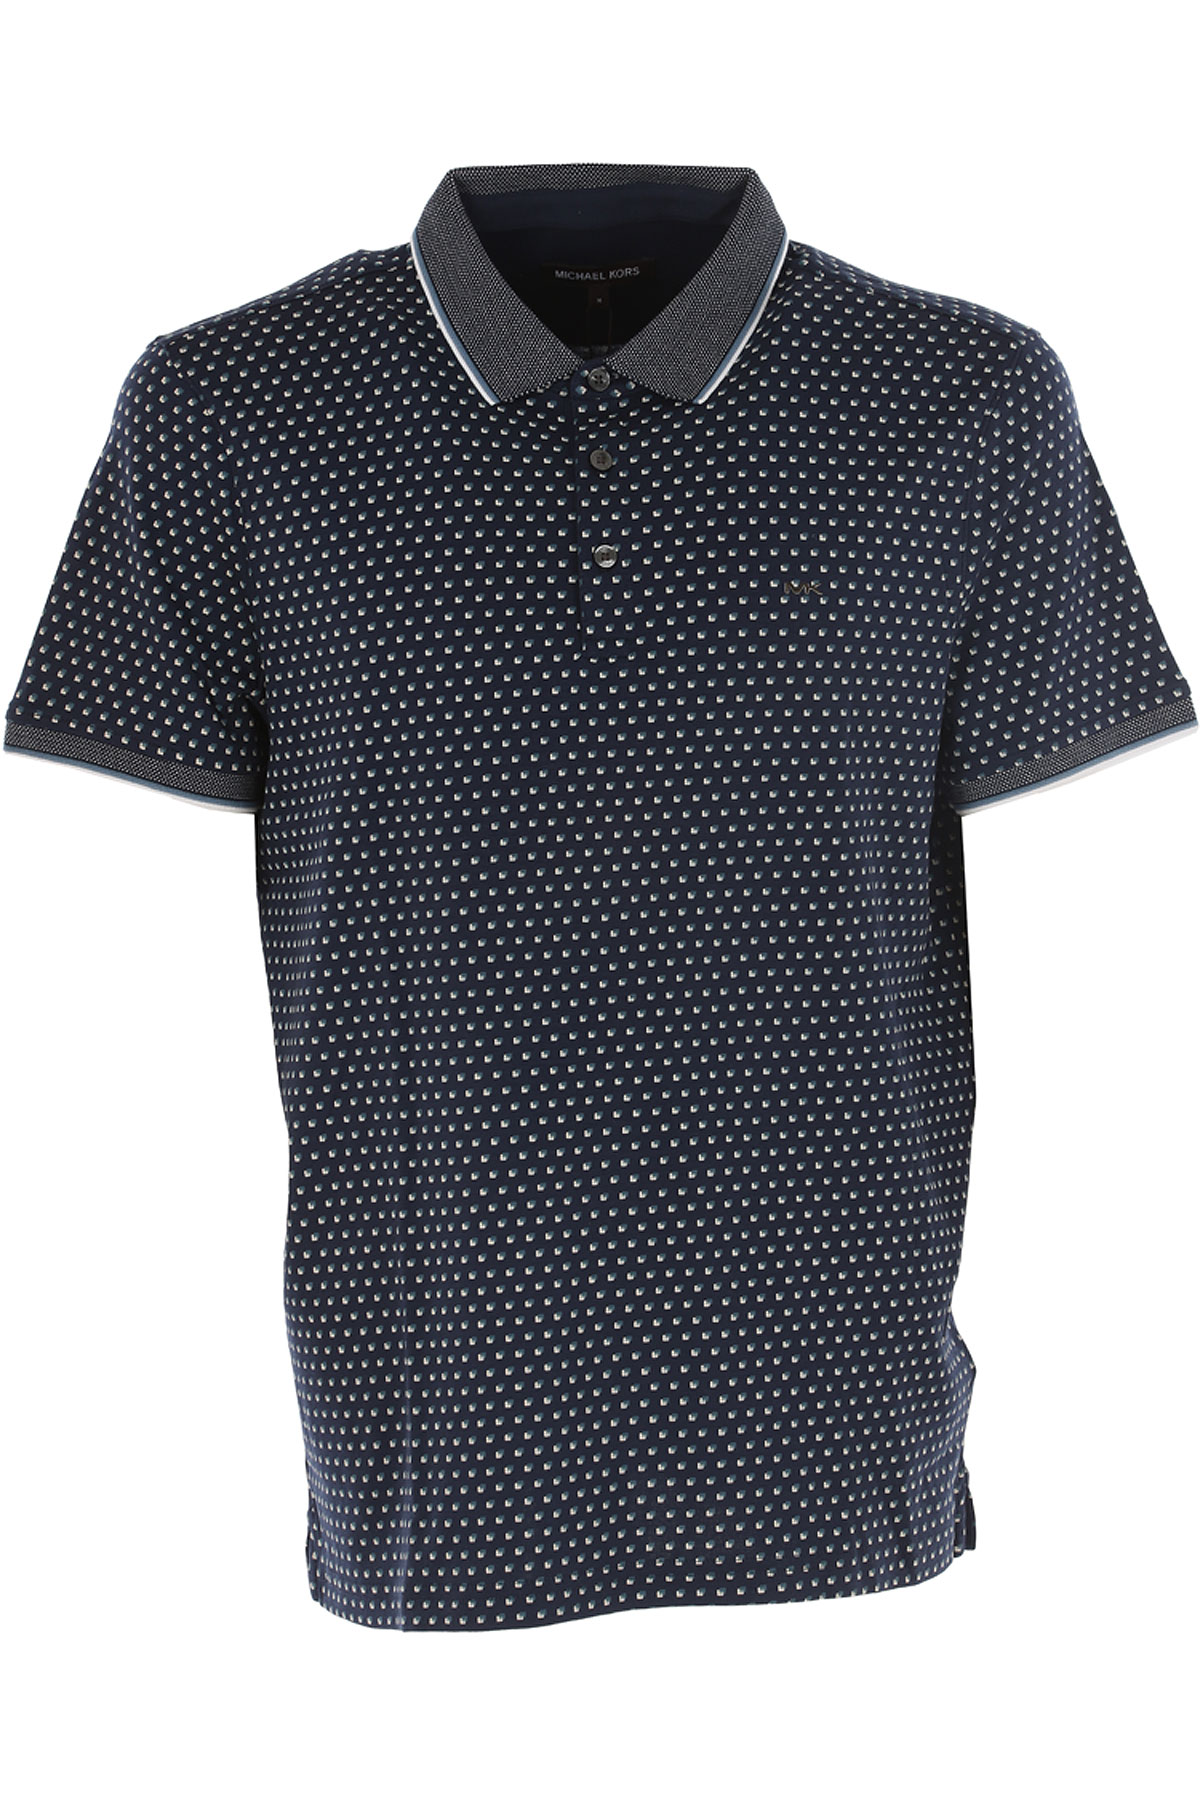 Michael Kors Polo Shirt for Men On Sale in Outlet, Navy Blue, Cotton, 2017, L M S